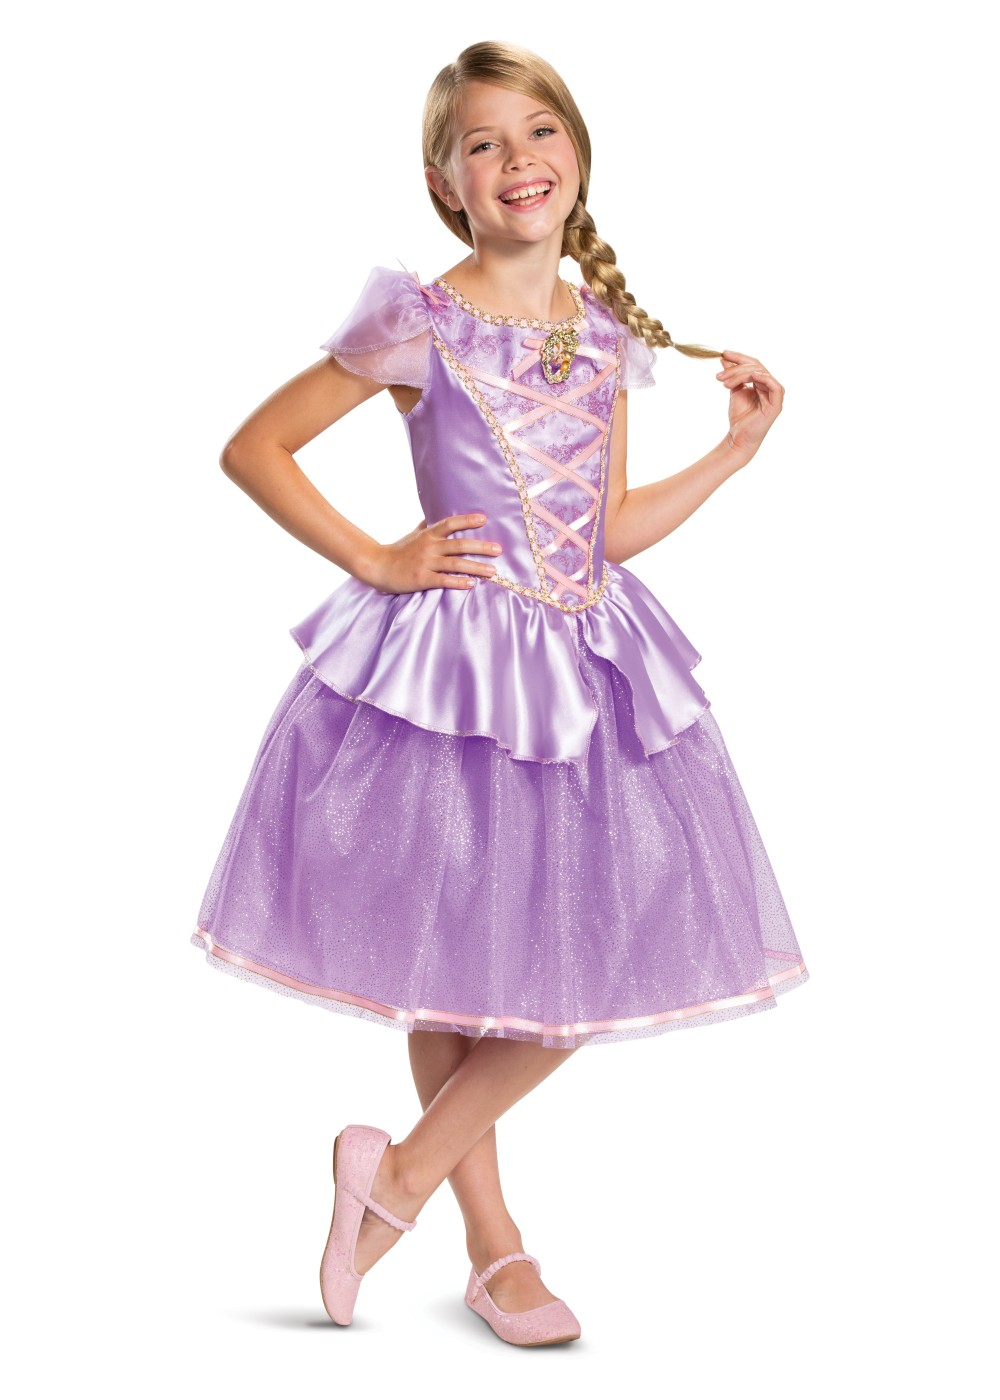 Disneys Rapunzel Girl Costume